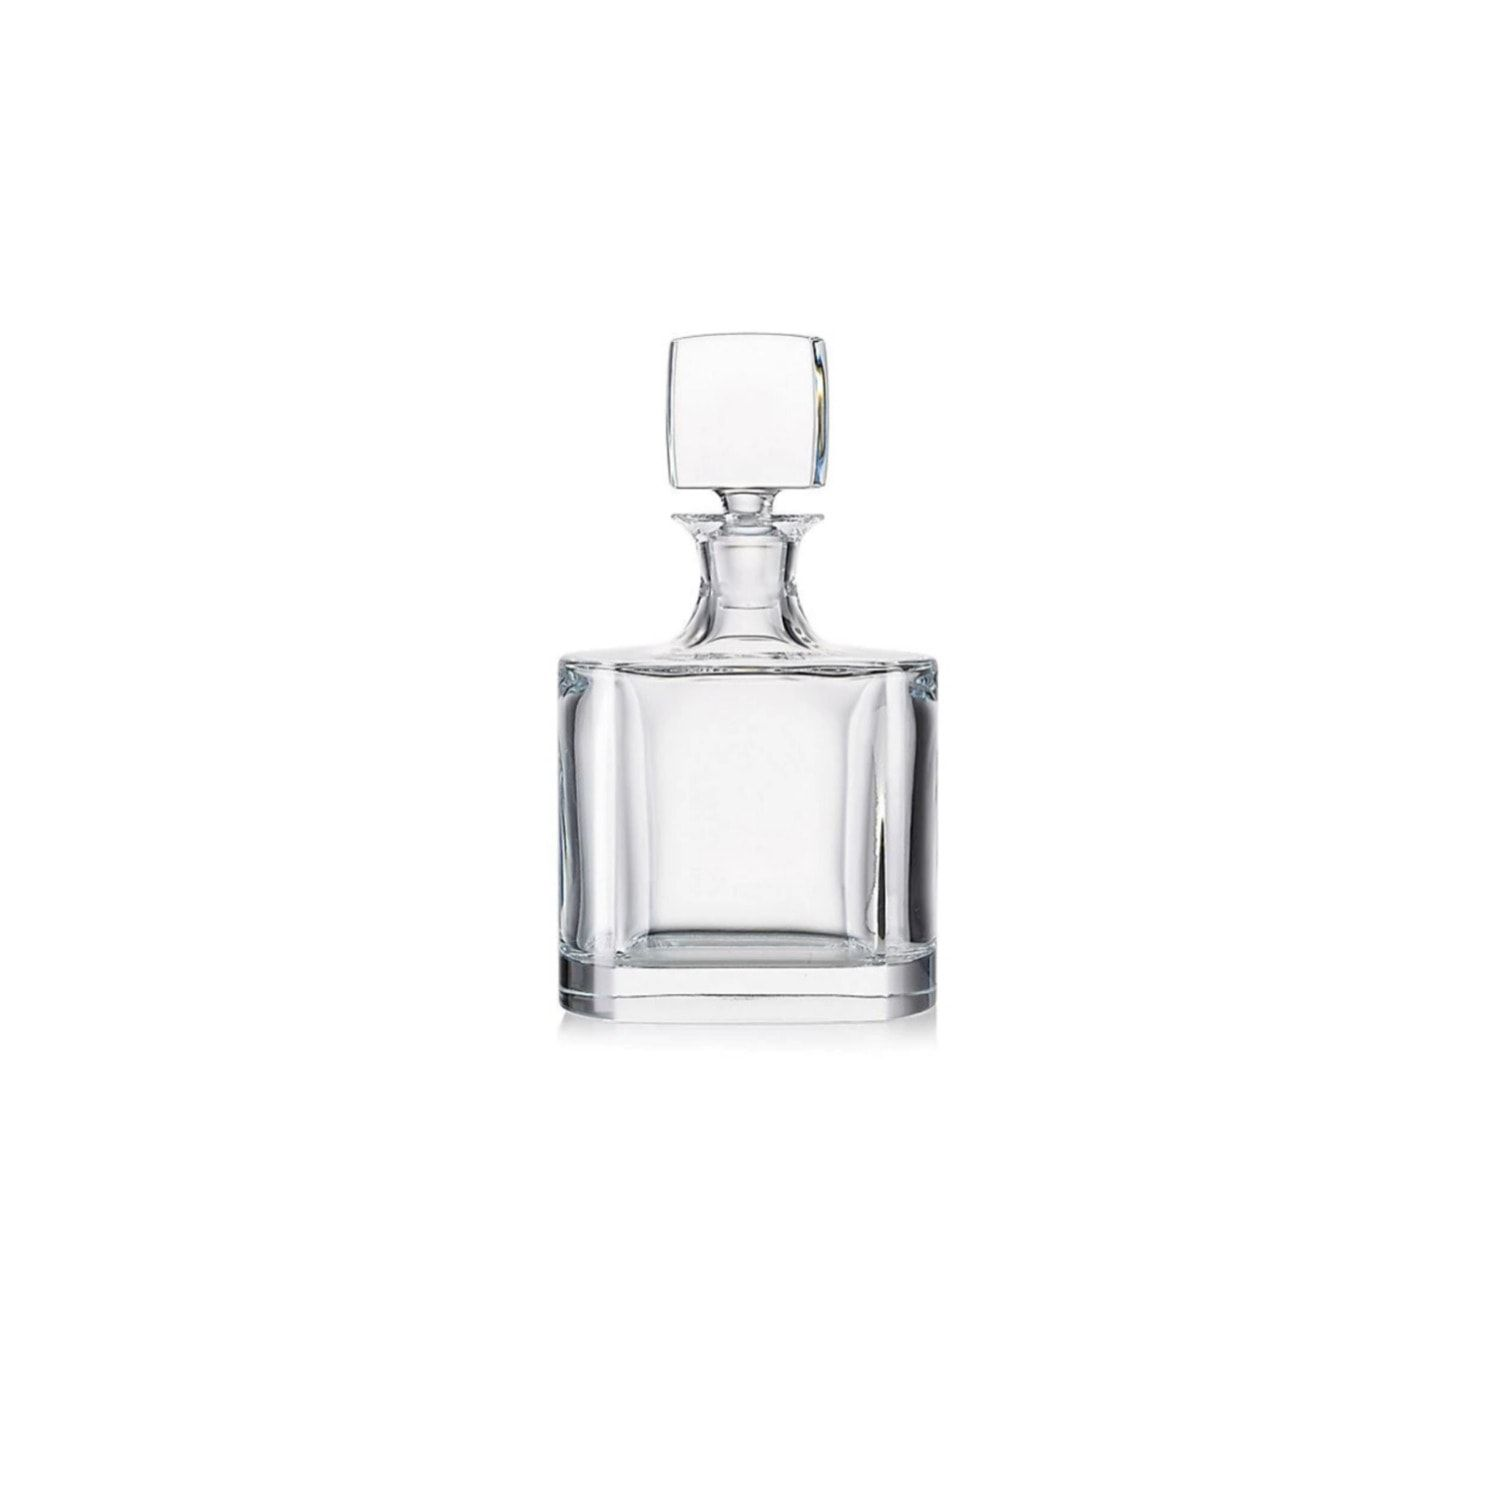 This whisky decanter and tumbler set from the Manhatan collection is a classic, timeless design. Each piece is beautifully crafted and pefect for home entertaining. Boasting a classic curvy shape and weighty base in rich crystal, this exquisite piece serves your guests in utmost style. Wash by Hand.